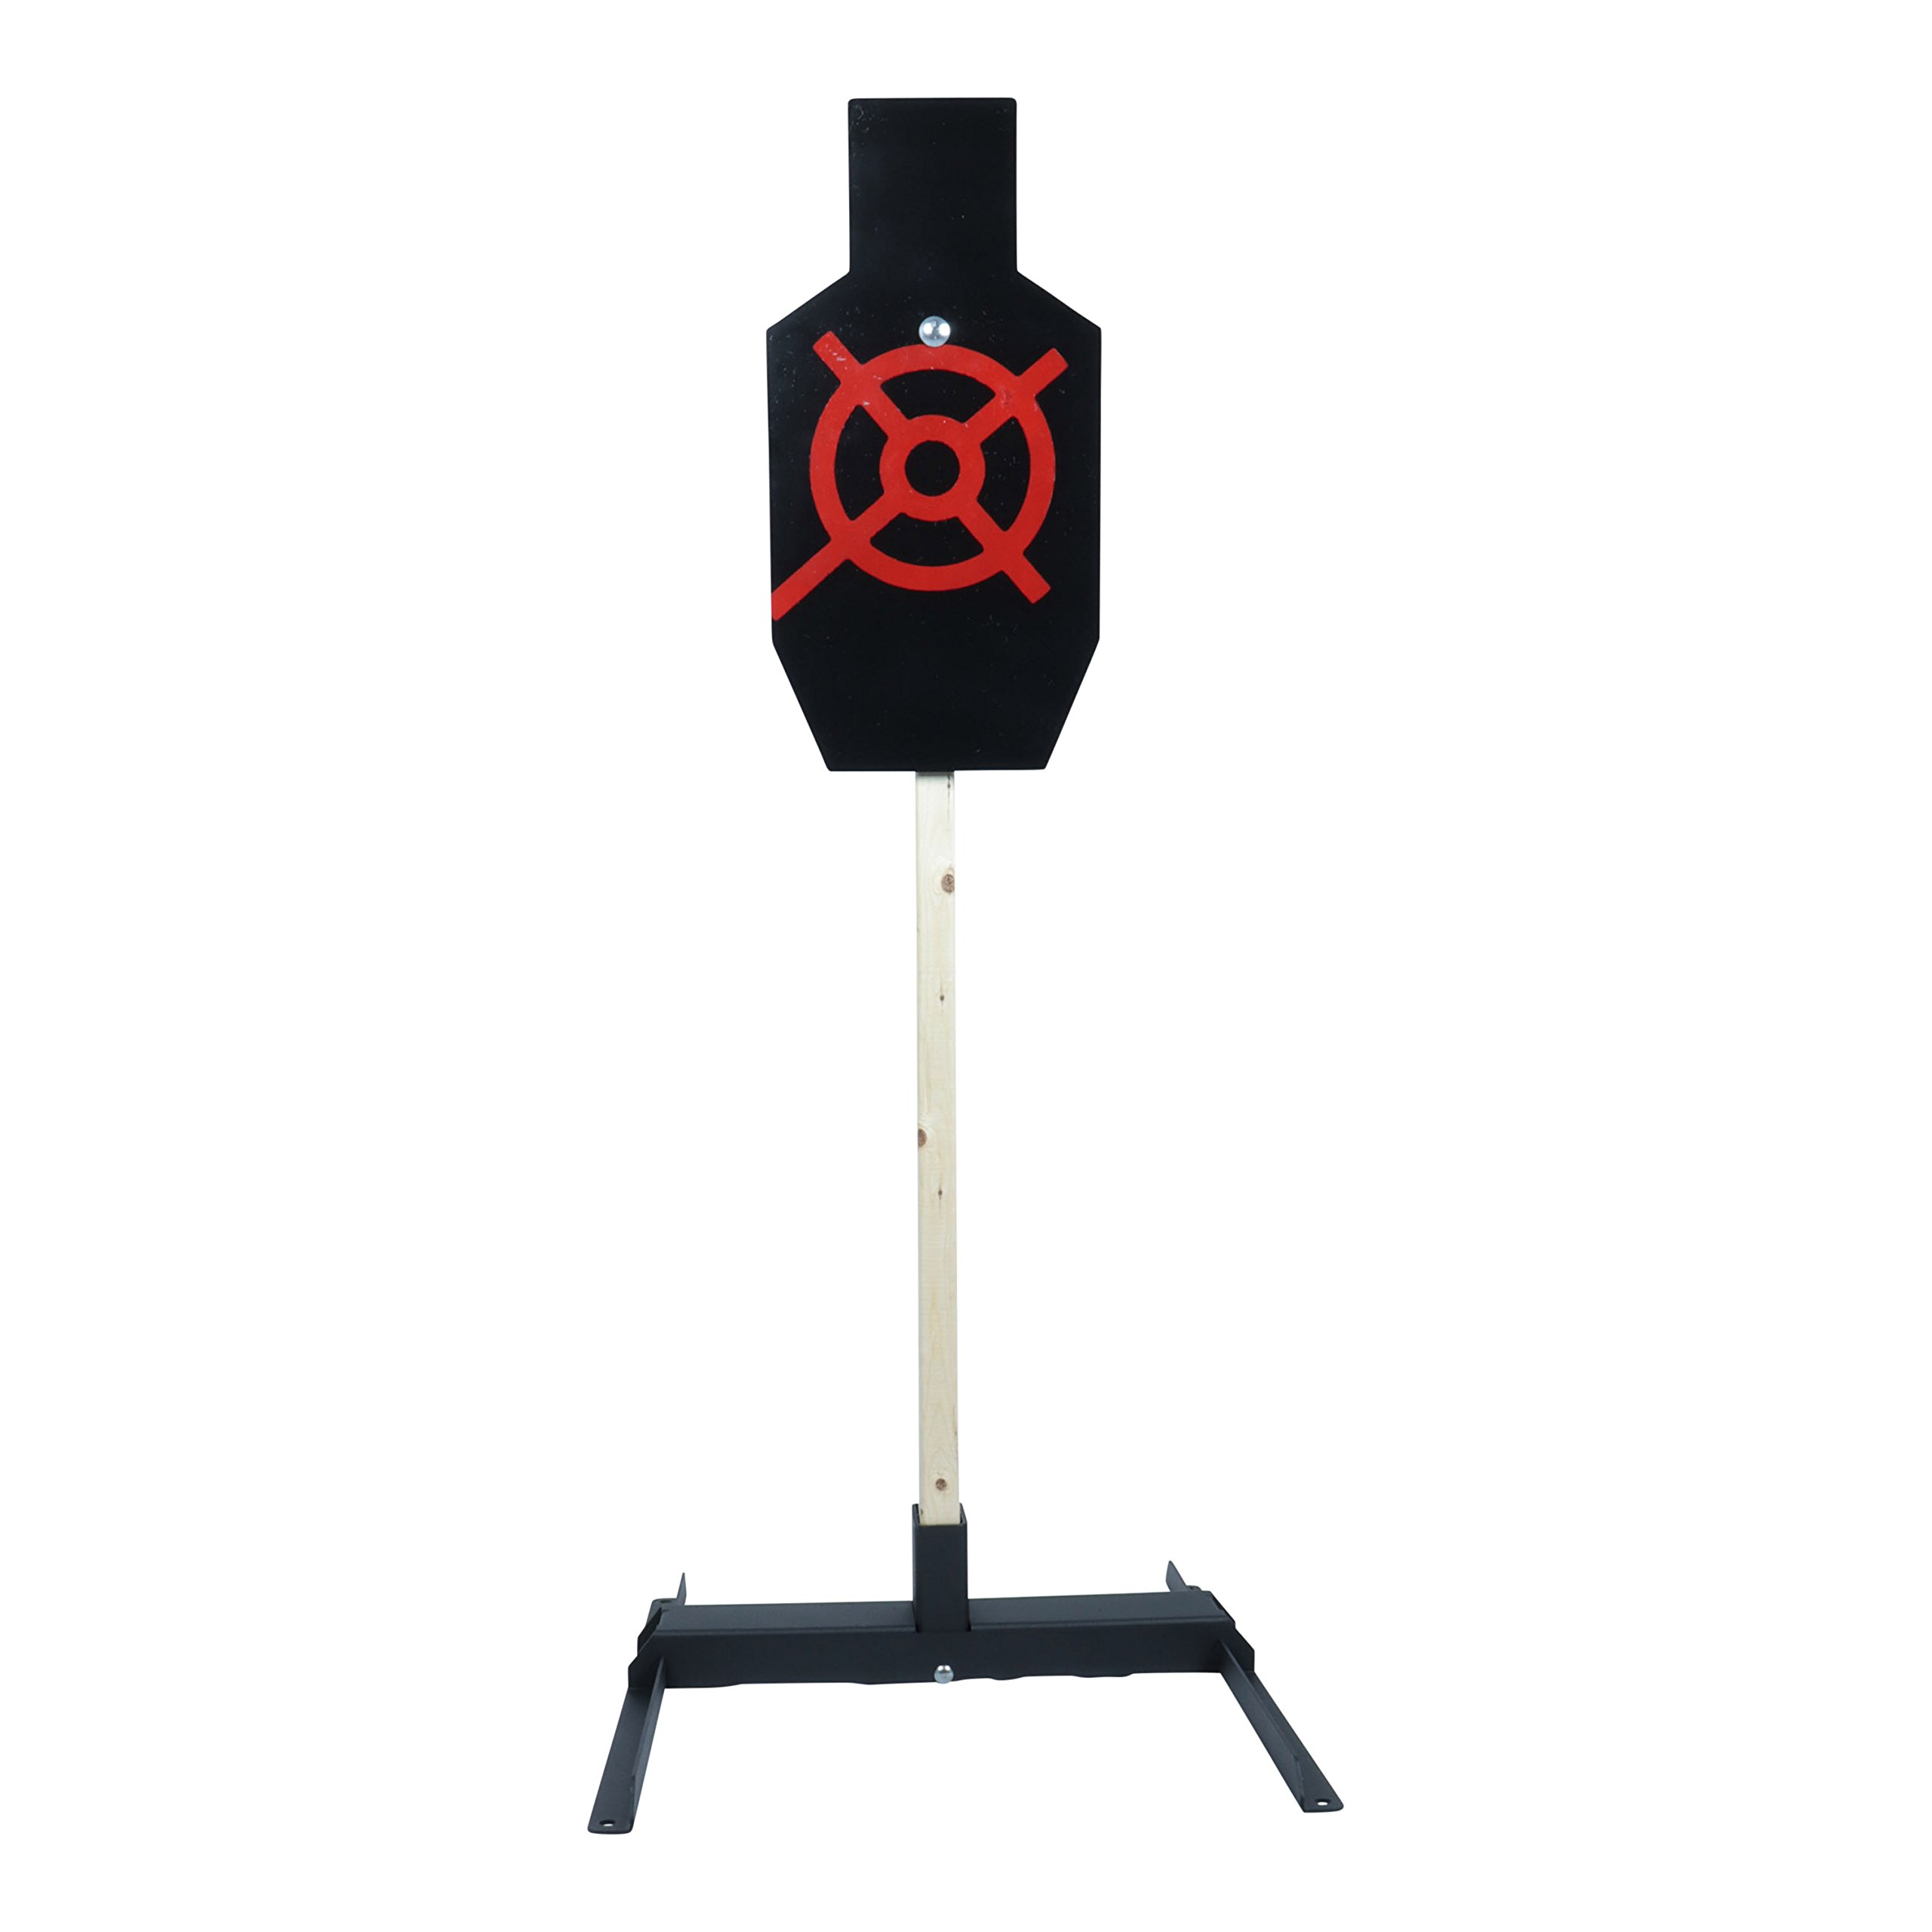 ShootingTargets7 IPSC AC Static Torso 3/8 inch AR500 + Base + Cap 12 x 24 inch for Rifles to 308 by ShootingTargets7